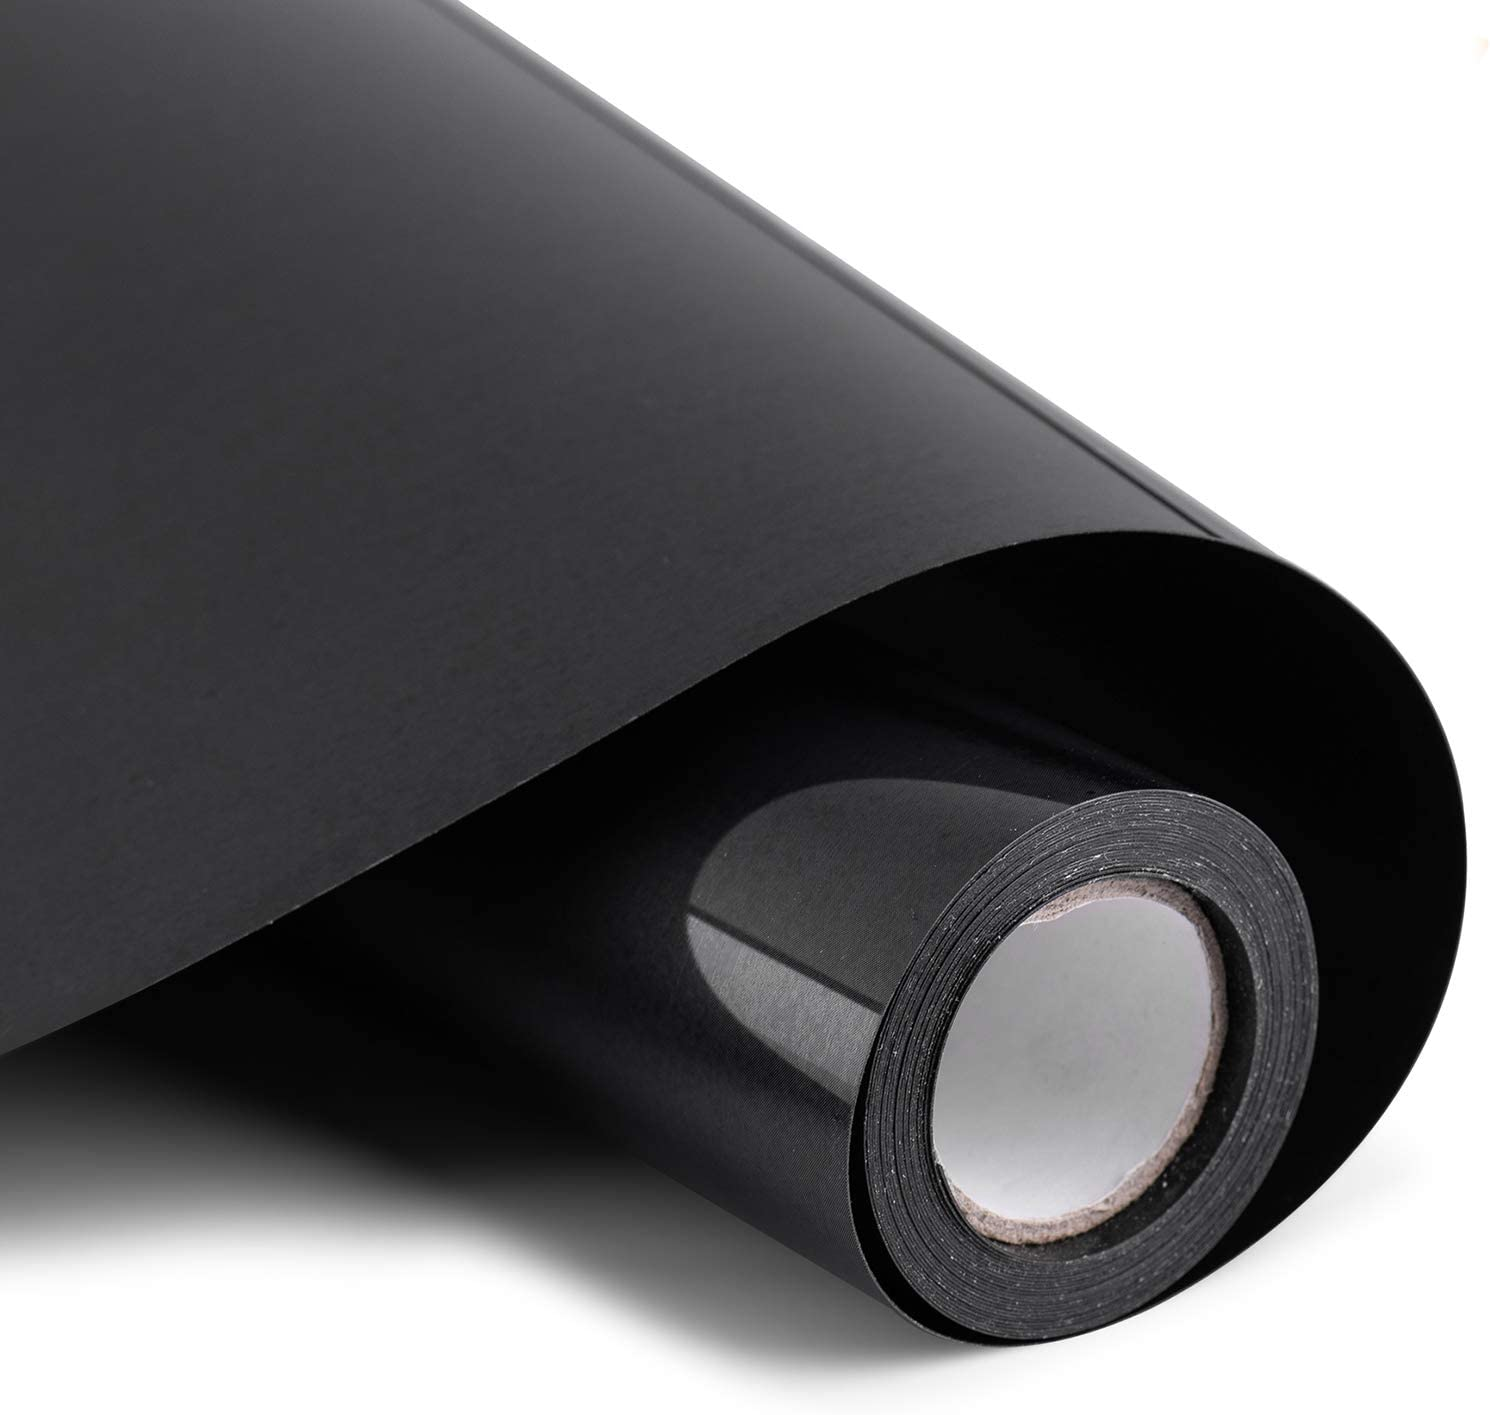 """Heat Transfer Vinyl 12"""" x 10' Feet Rolls, PU HTV Bundle by Somolux for Cricut and Silhouette Cameo Easy to Cut & Weed, DIY Heat Press Design for T-Shirt, Clothes, Hats and Other Textiles (Black): Home & Kitchen"""